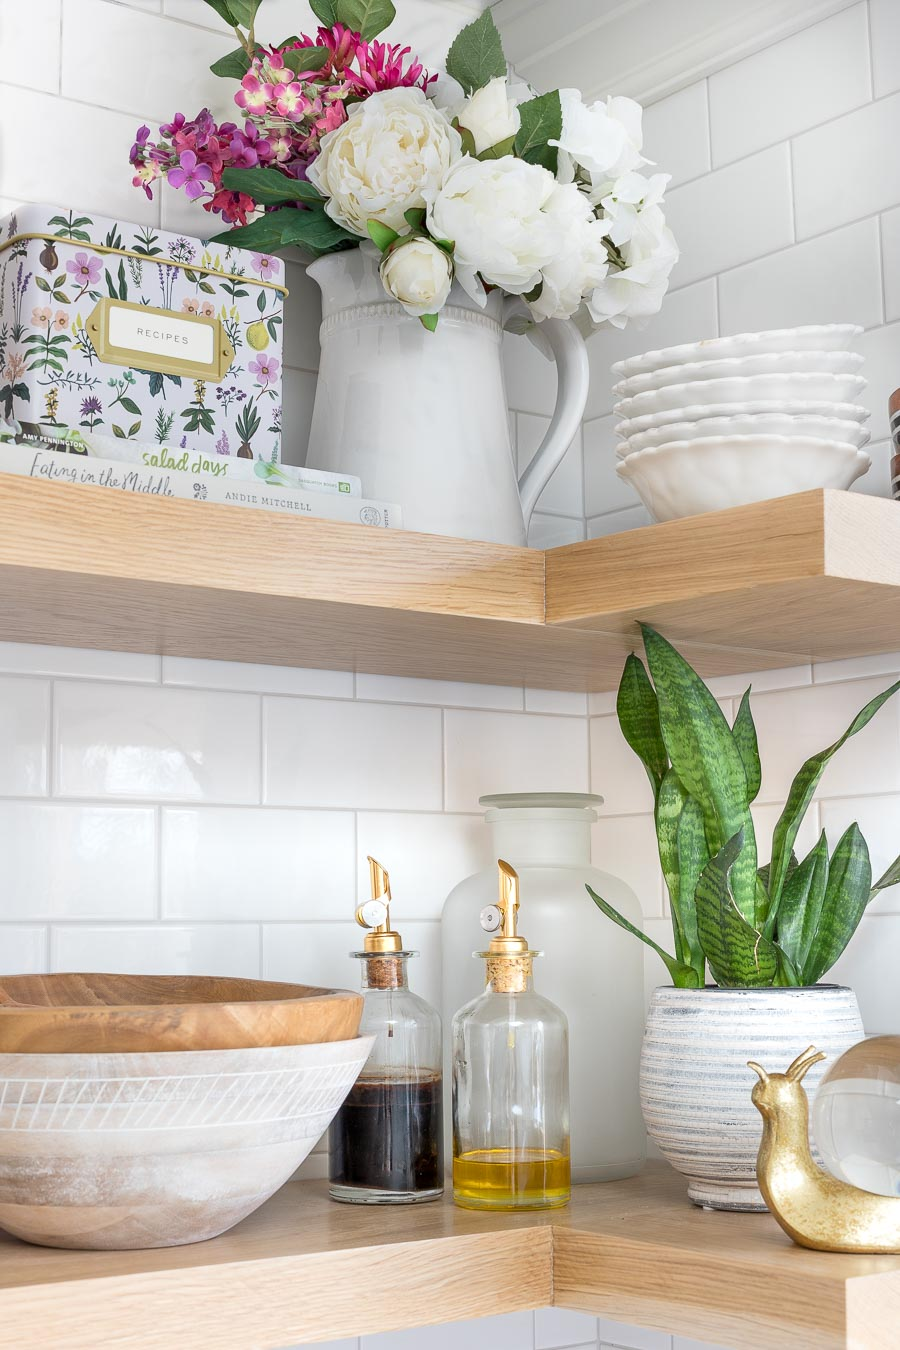 DIY Floating Corner Shelves in Our Kitchen - All the Details ...